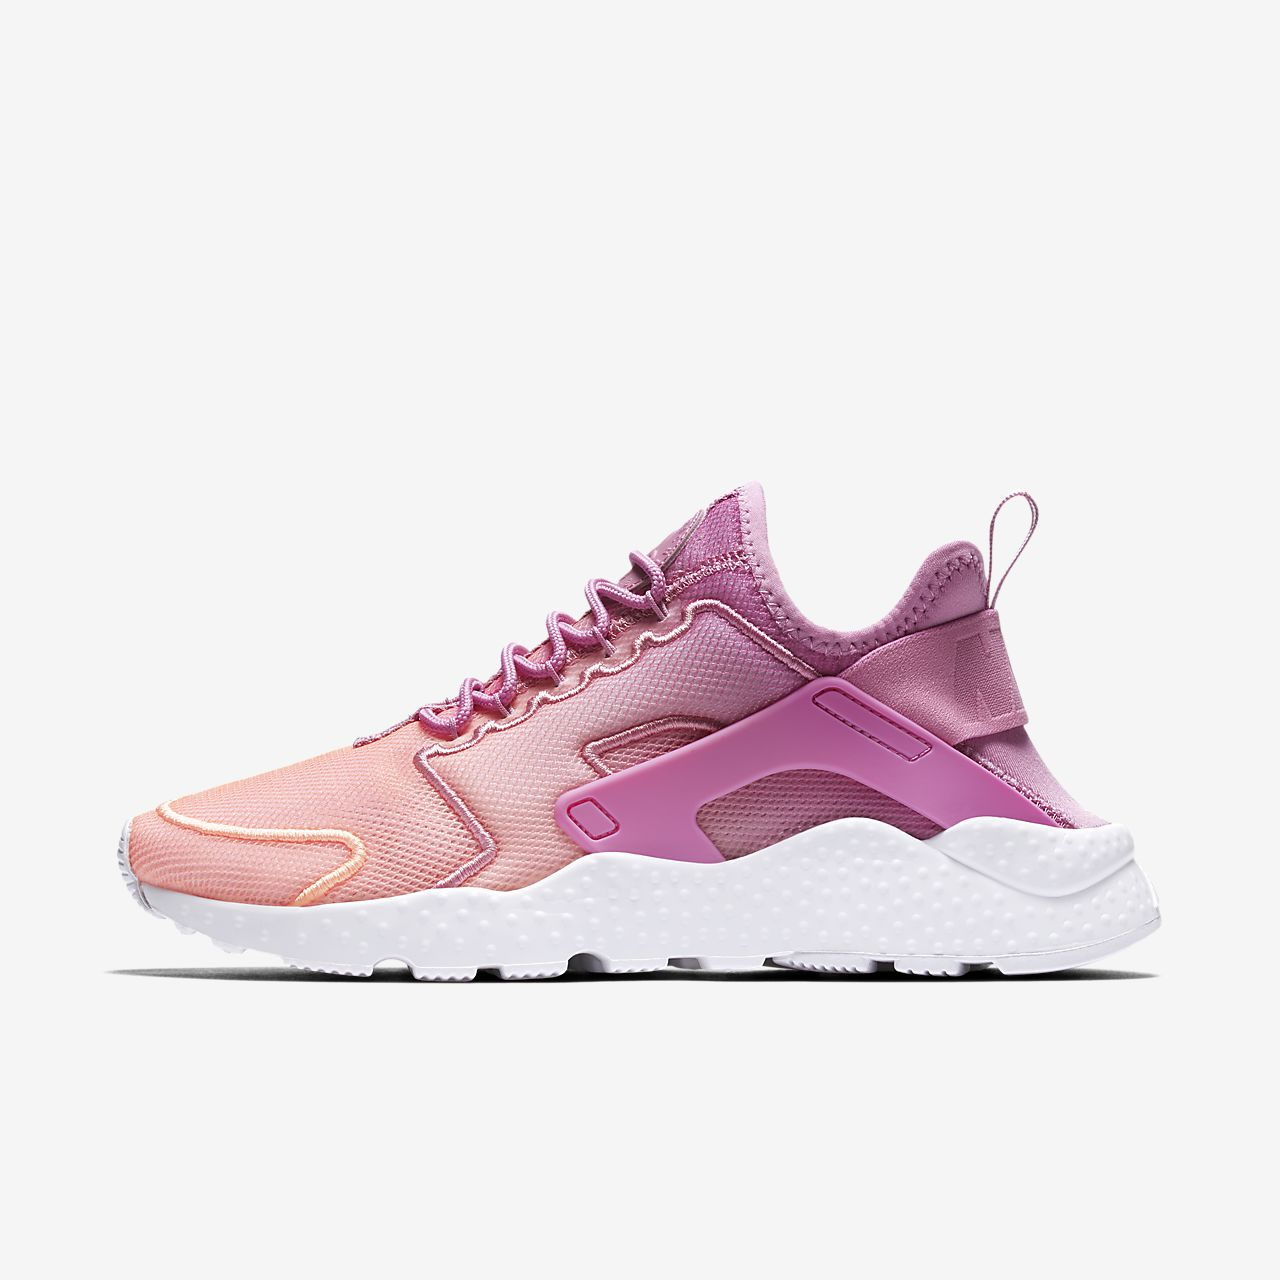 Nike Air Huarache Ultra Breathe LX96274 Women